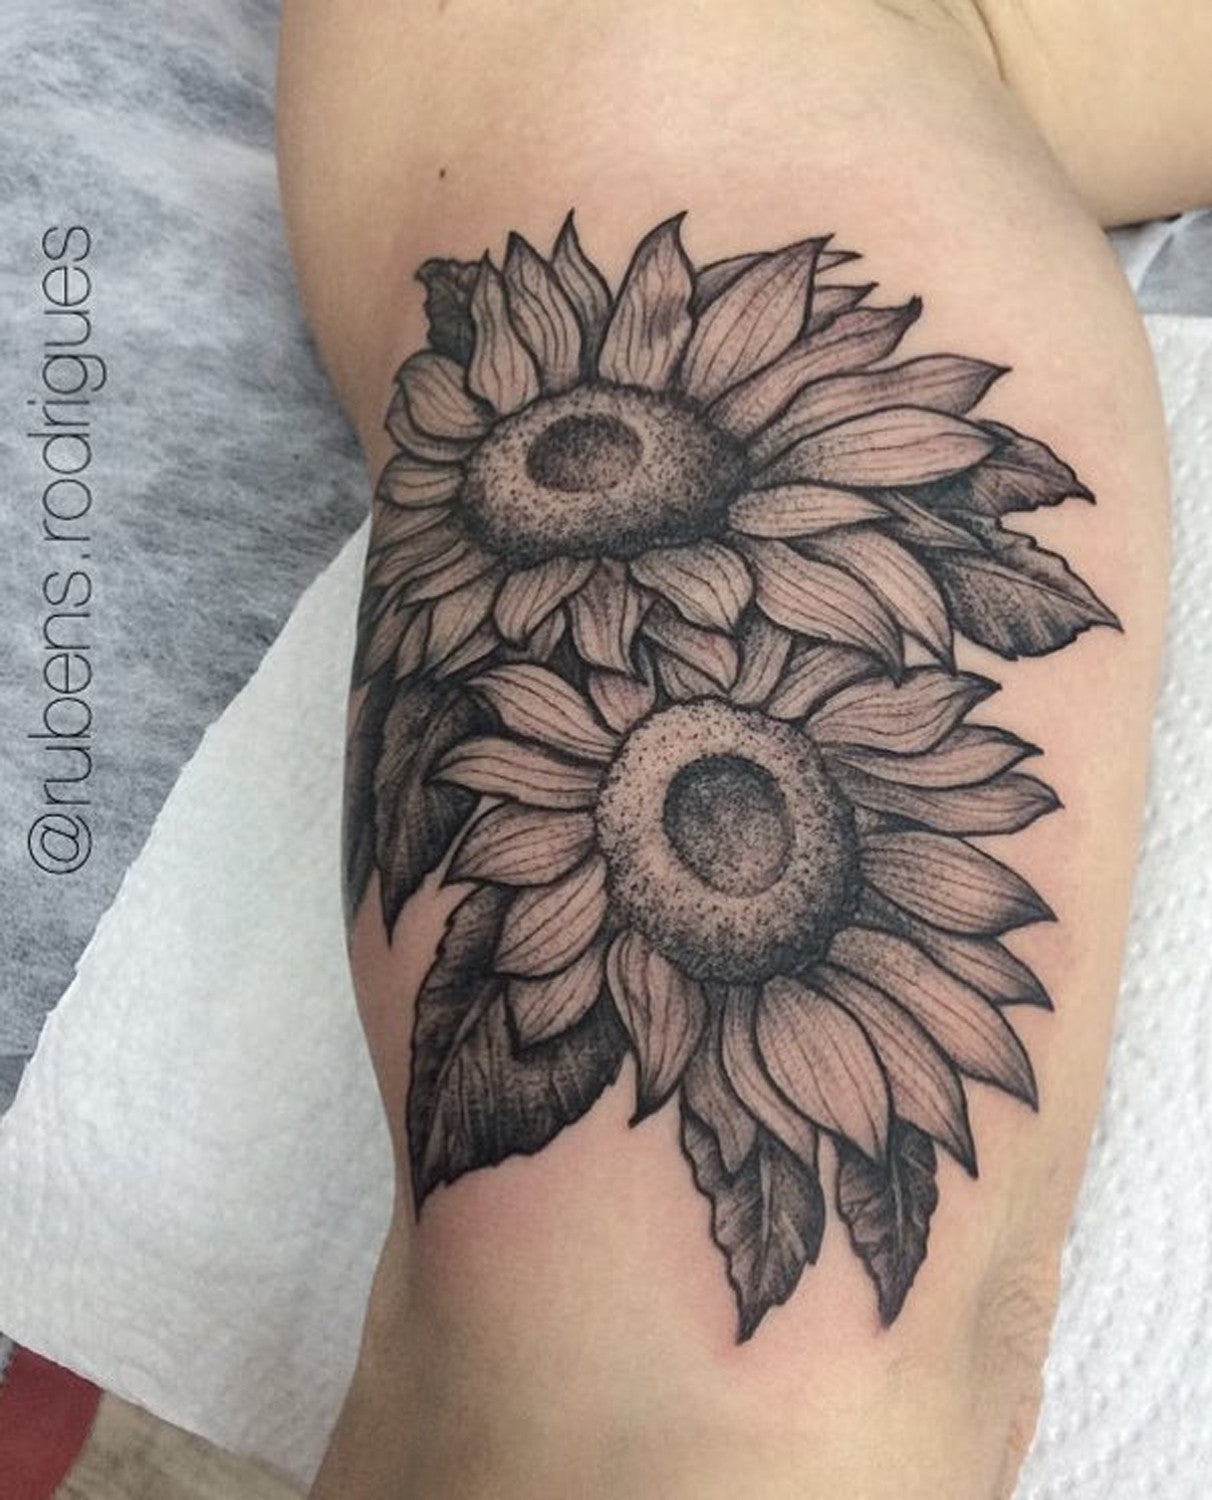 Wild Vintage Traditional Black and White Sunflower Bicep Arm Sleeve Tattoo Ideas for Women at MyBodiArt.com